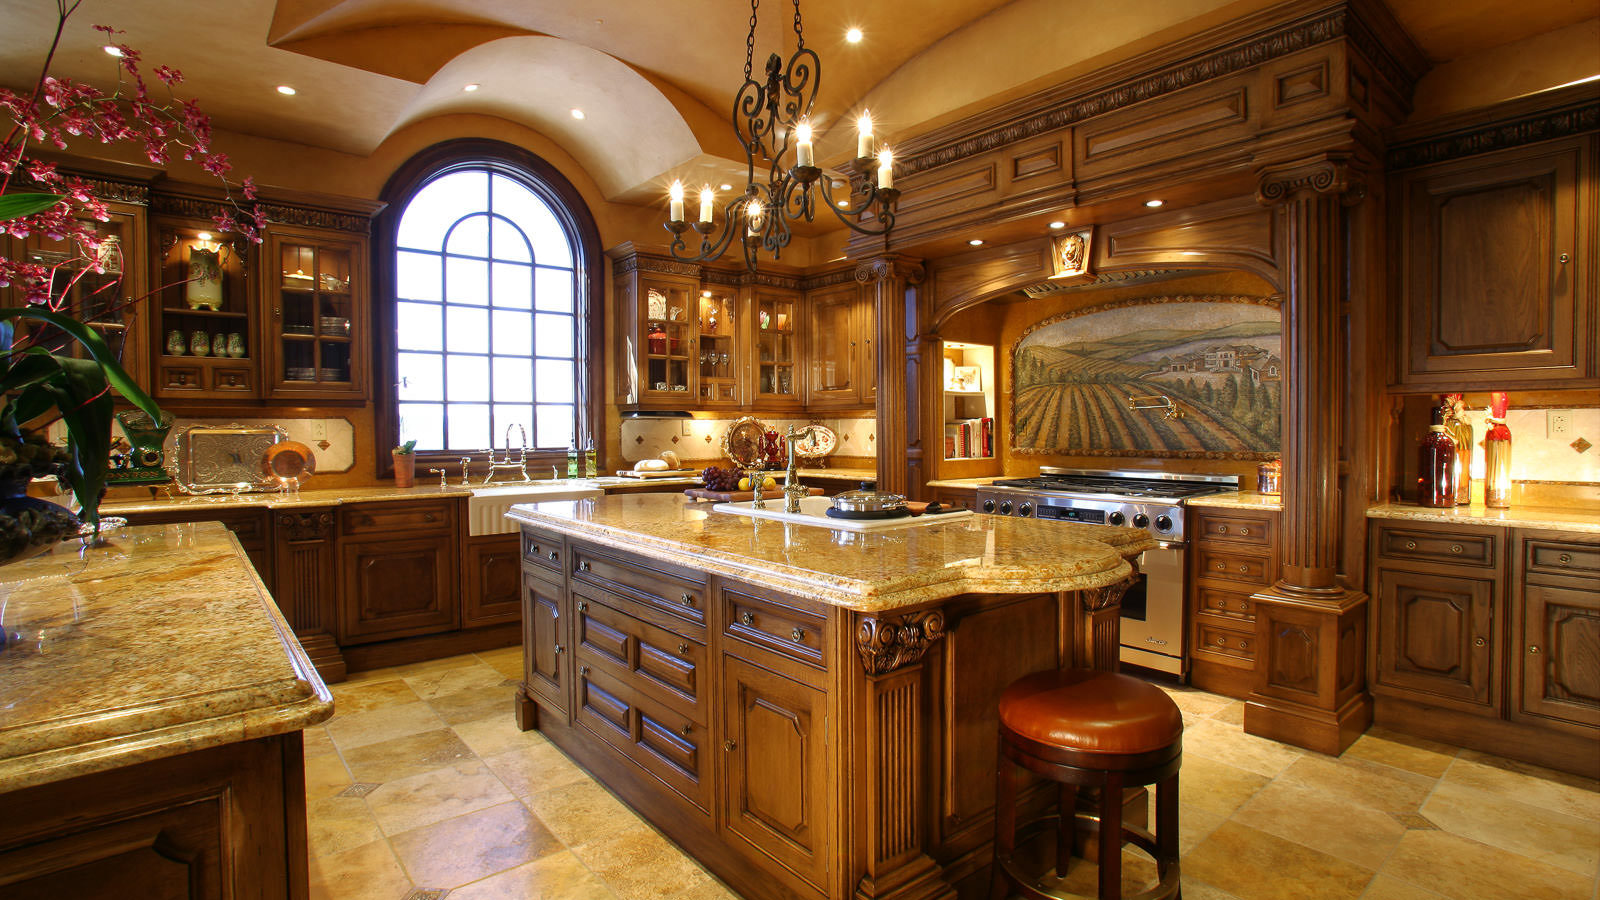 Uncategorized Luxurious Kitchen Designs 20 luxury kitchen designs decorating ideas design trends beautiful kitchen